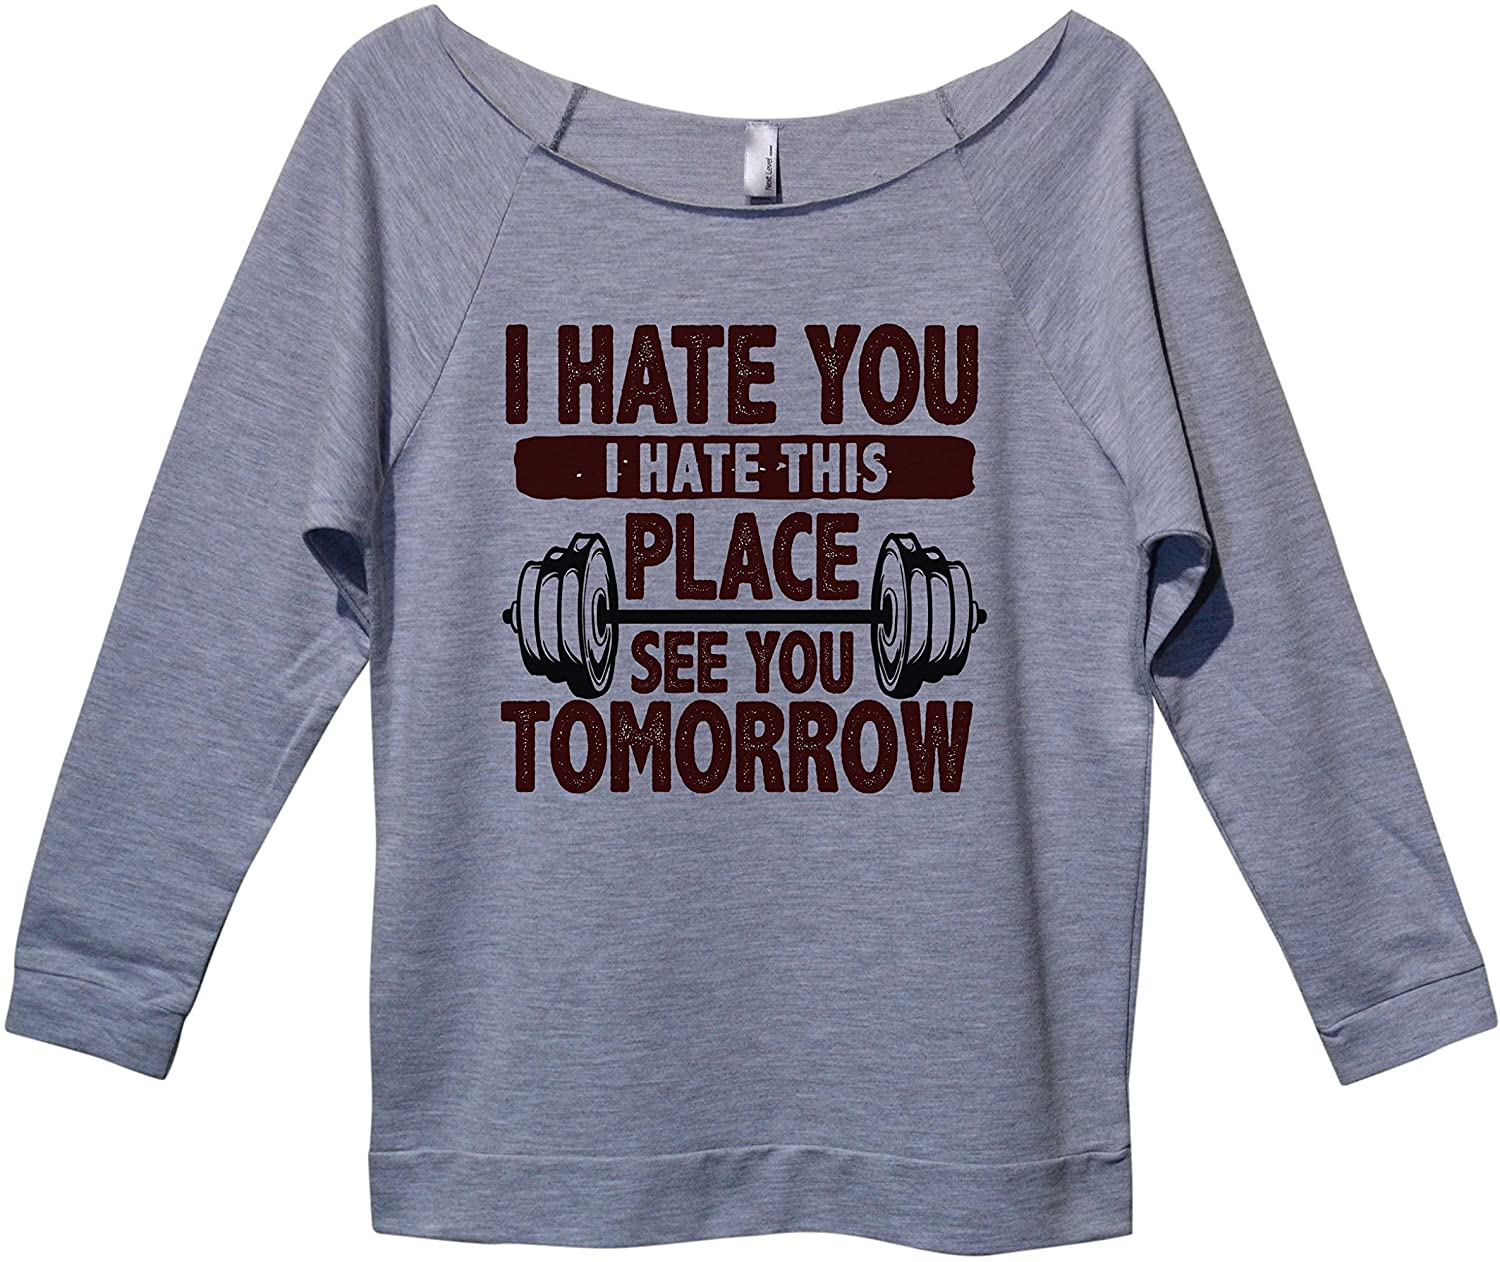 Funny Workout Sweatshirts Hate You Hate This Place See You Tomorrow - Royaltee Shirts